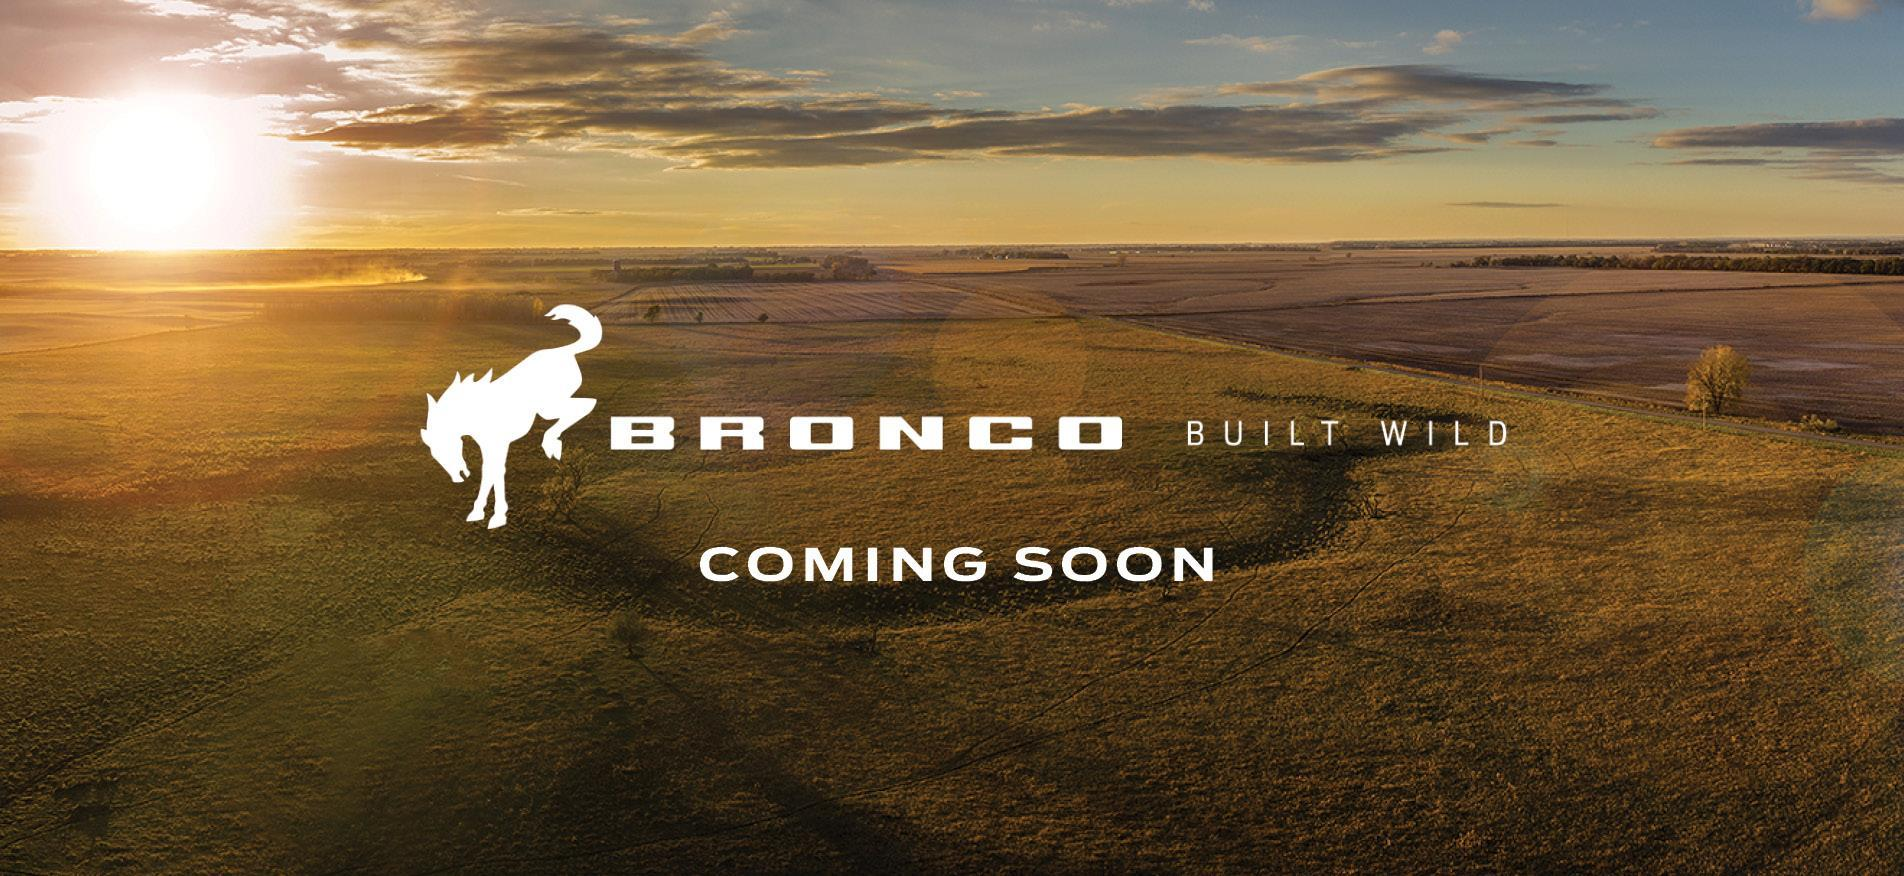 Bronco Coming Soon